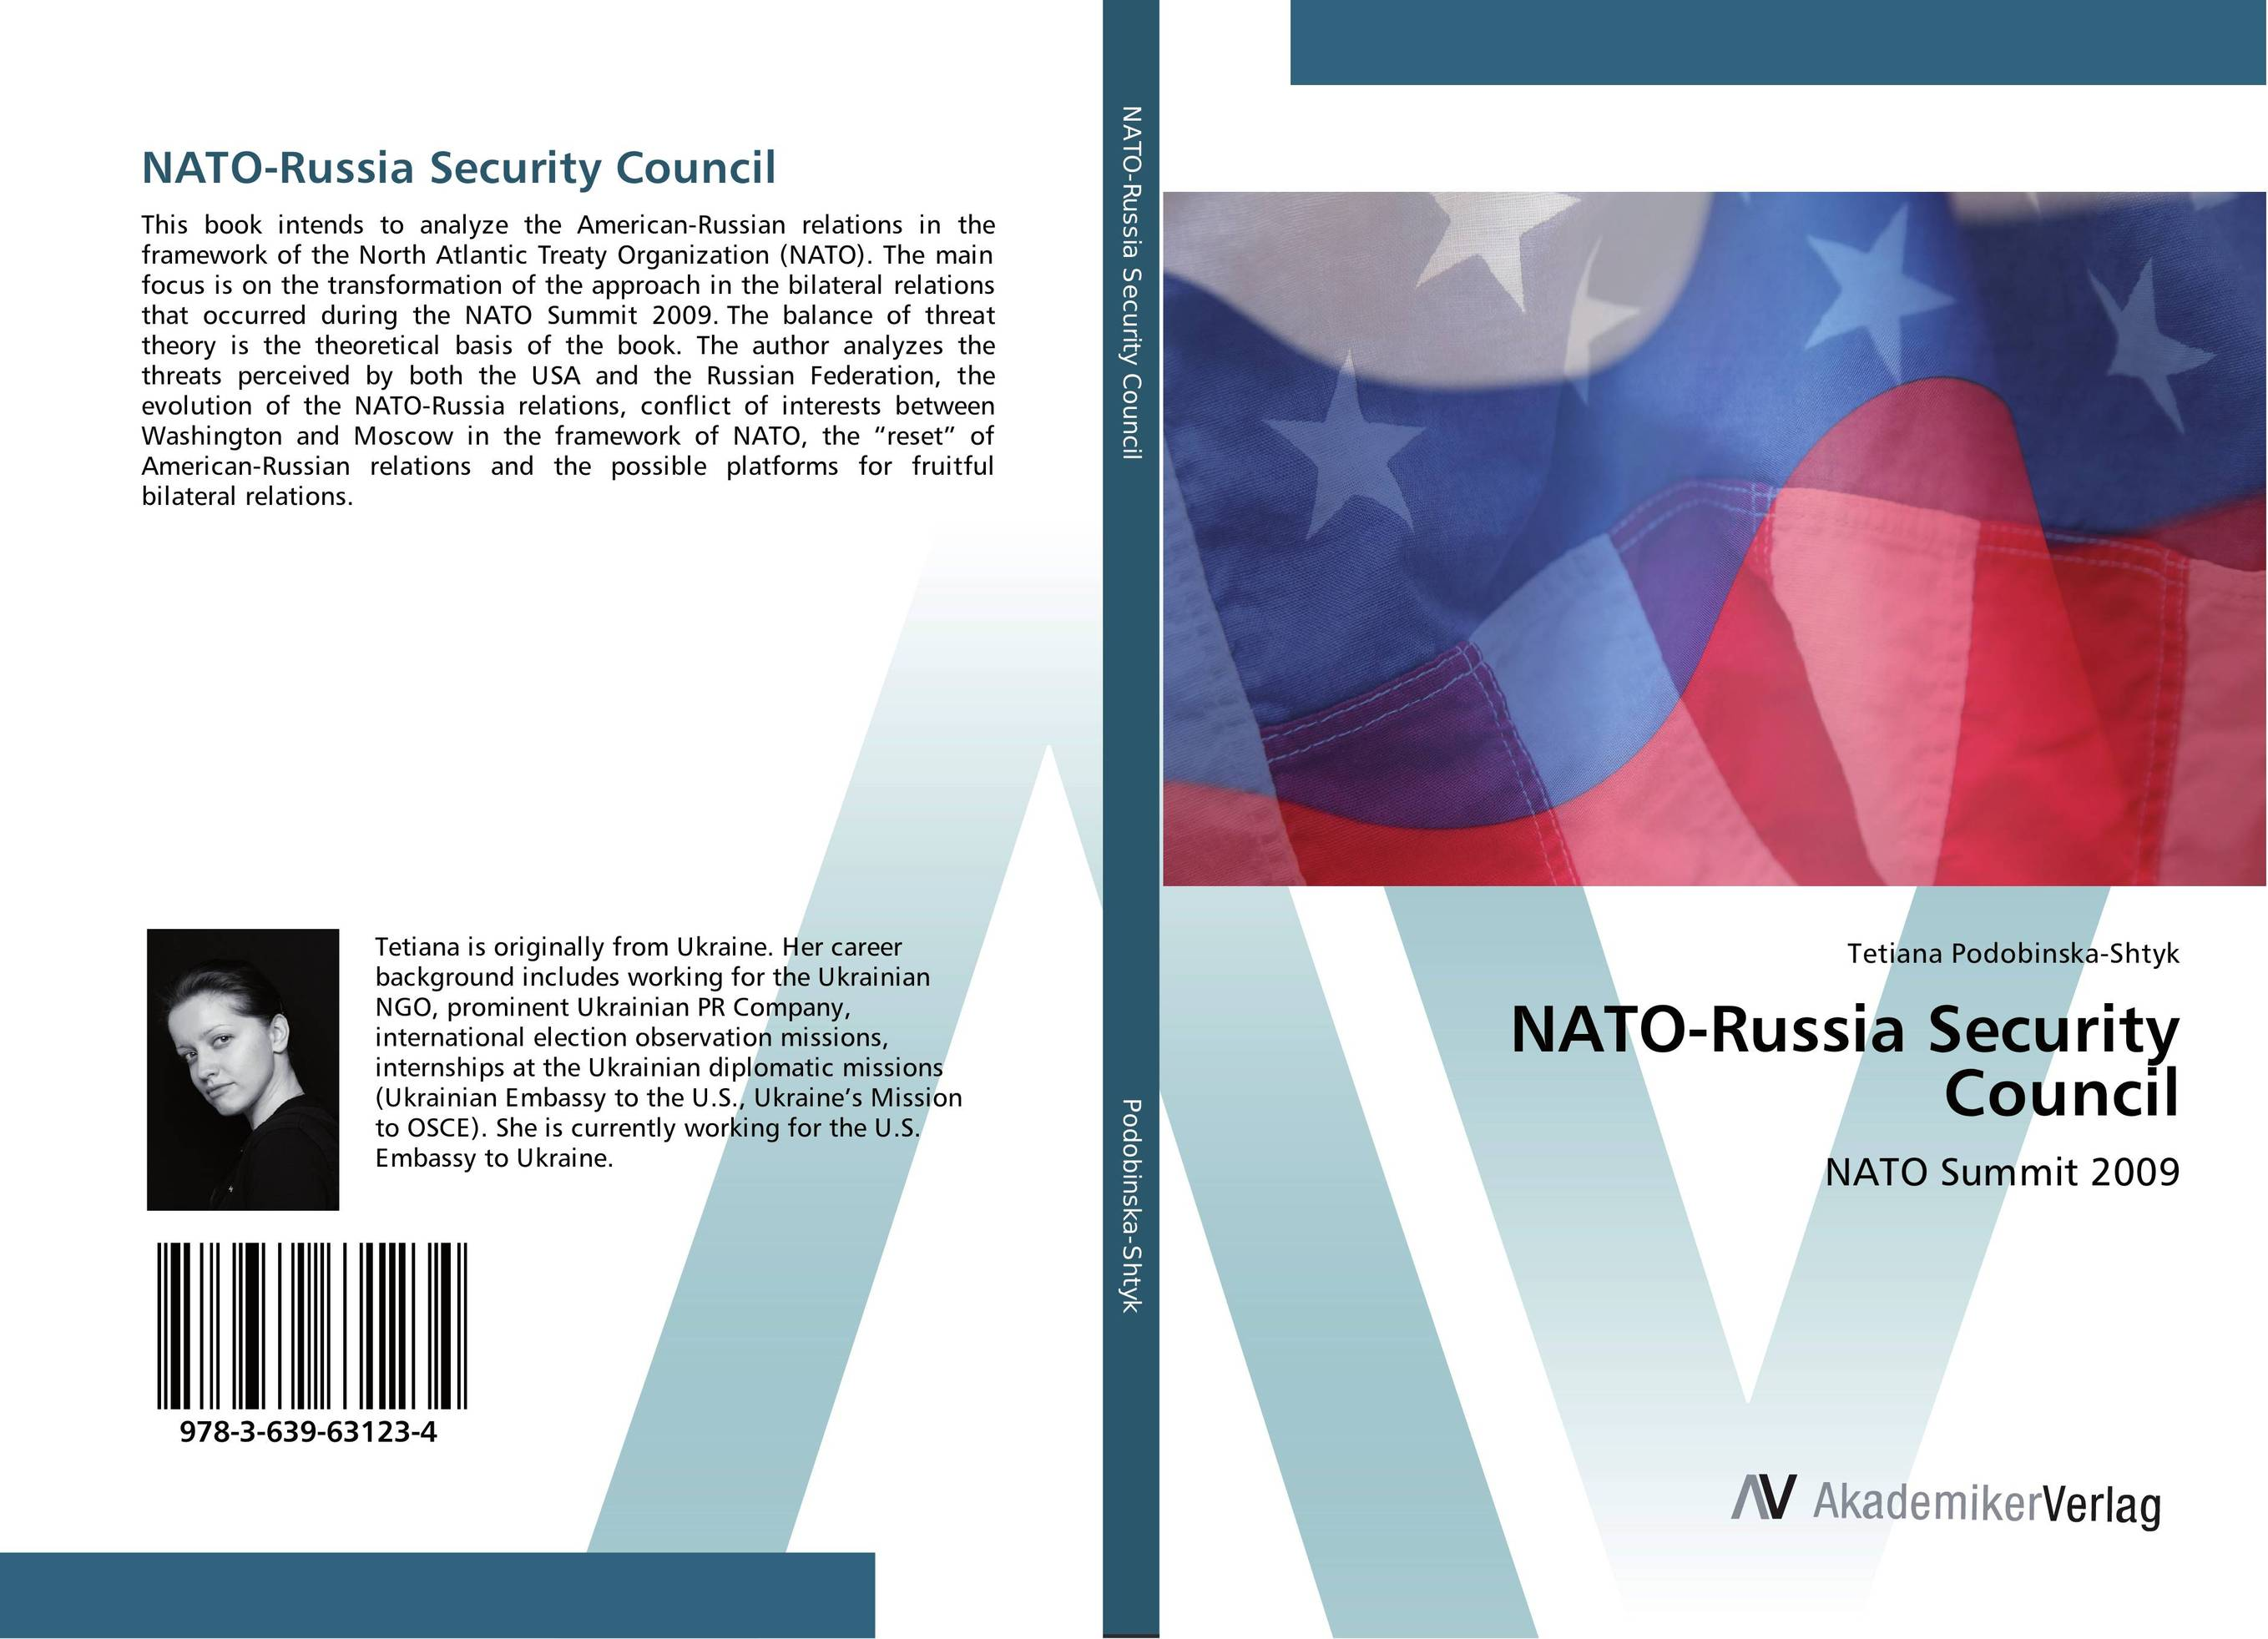 NATO-Russia Security Council russian phrase book